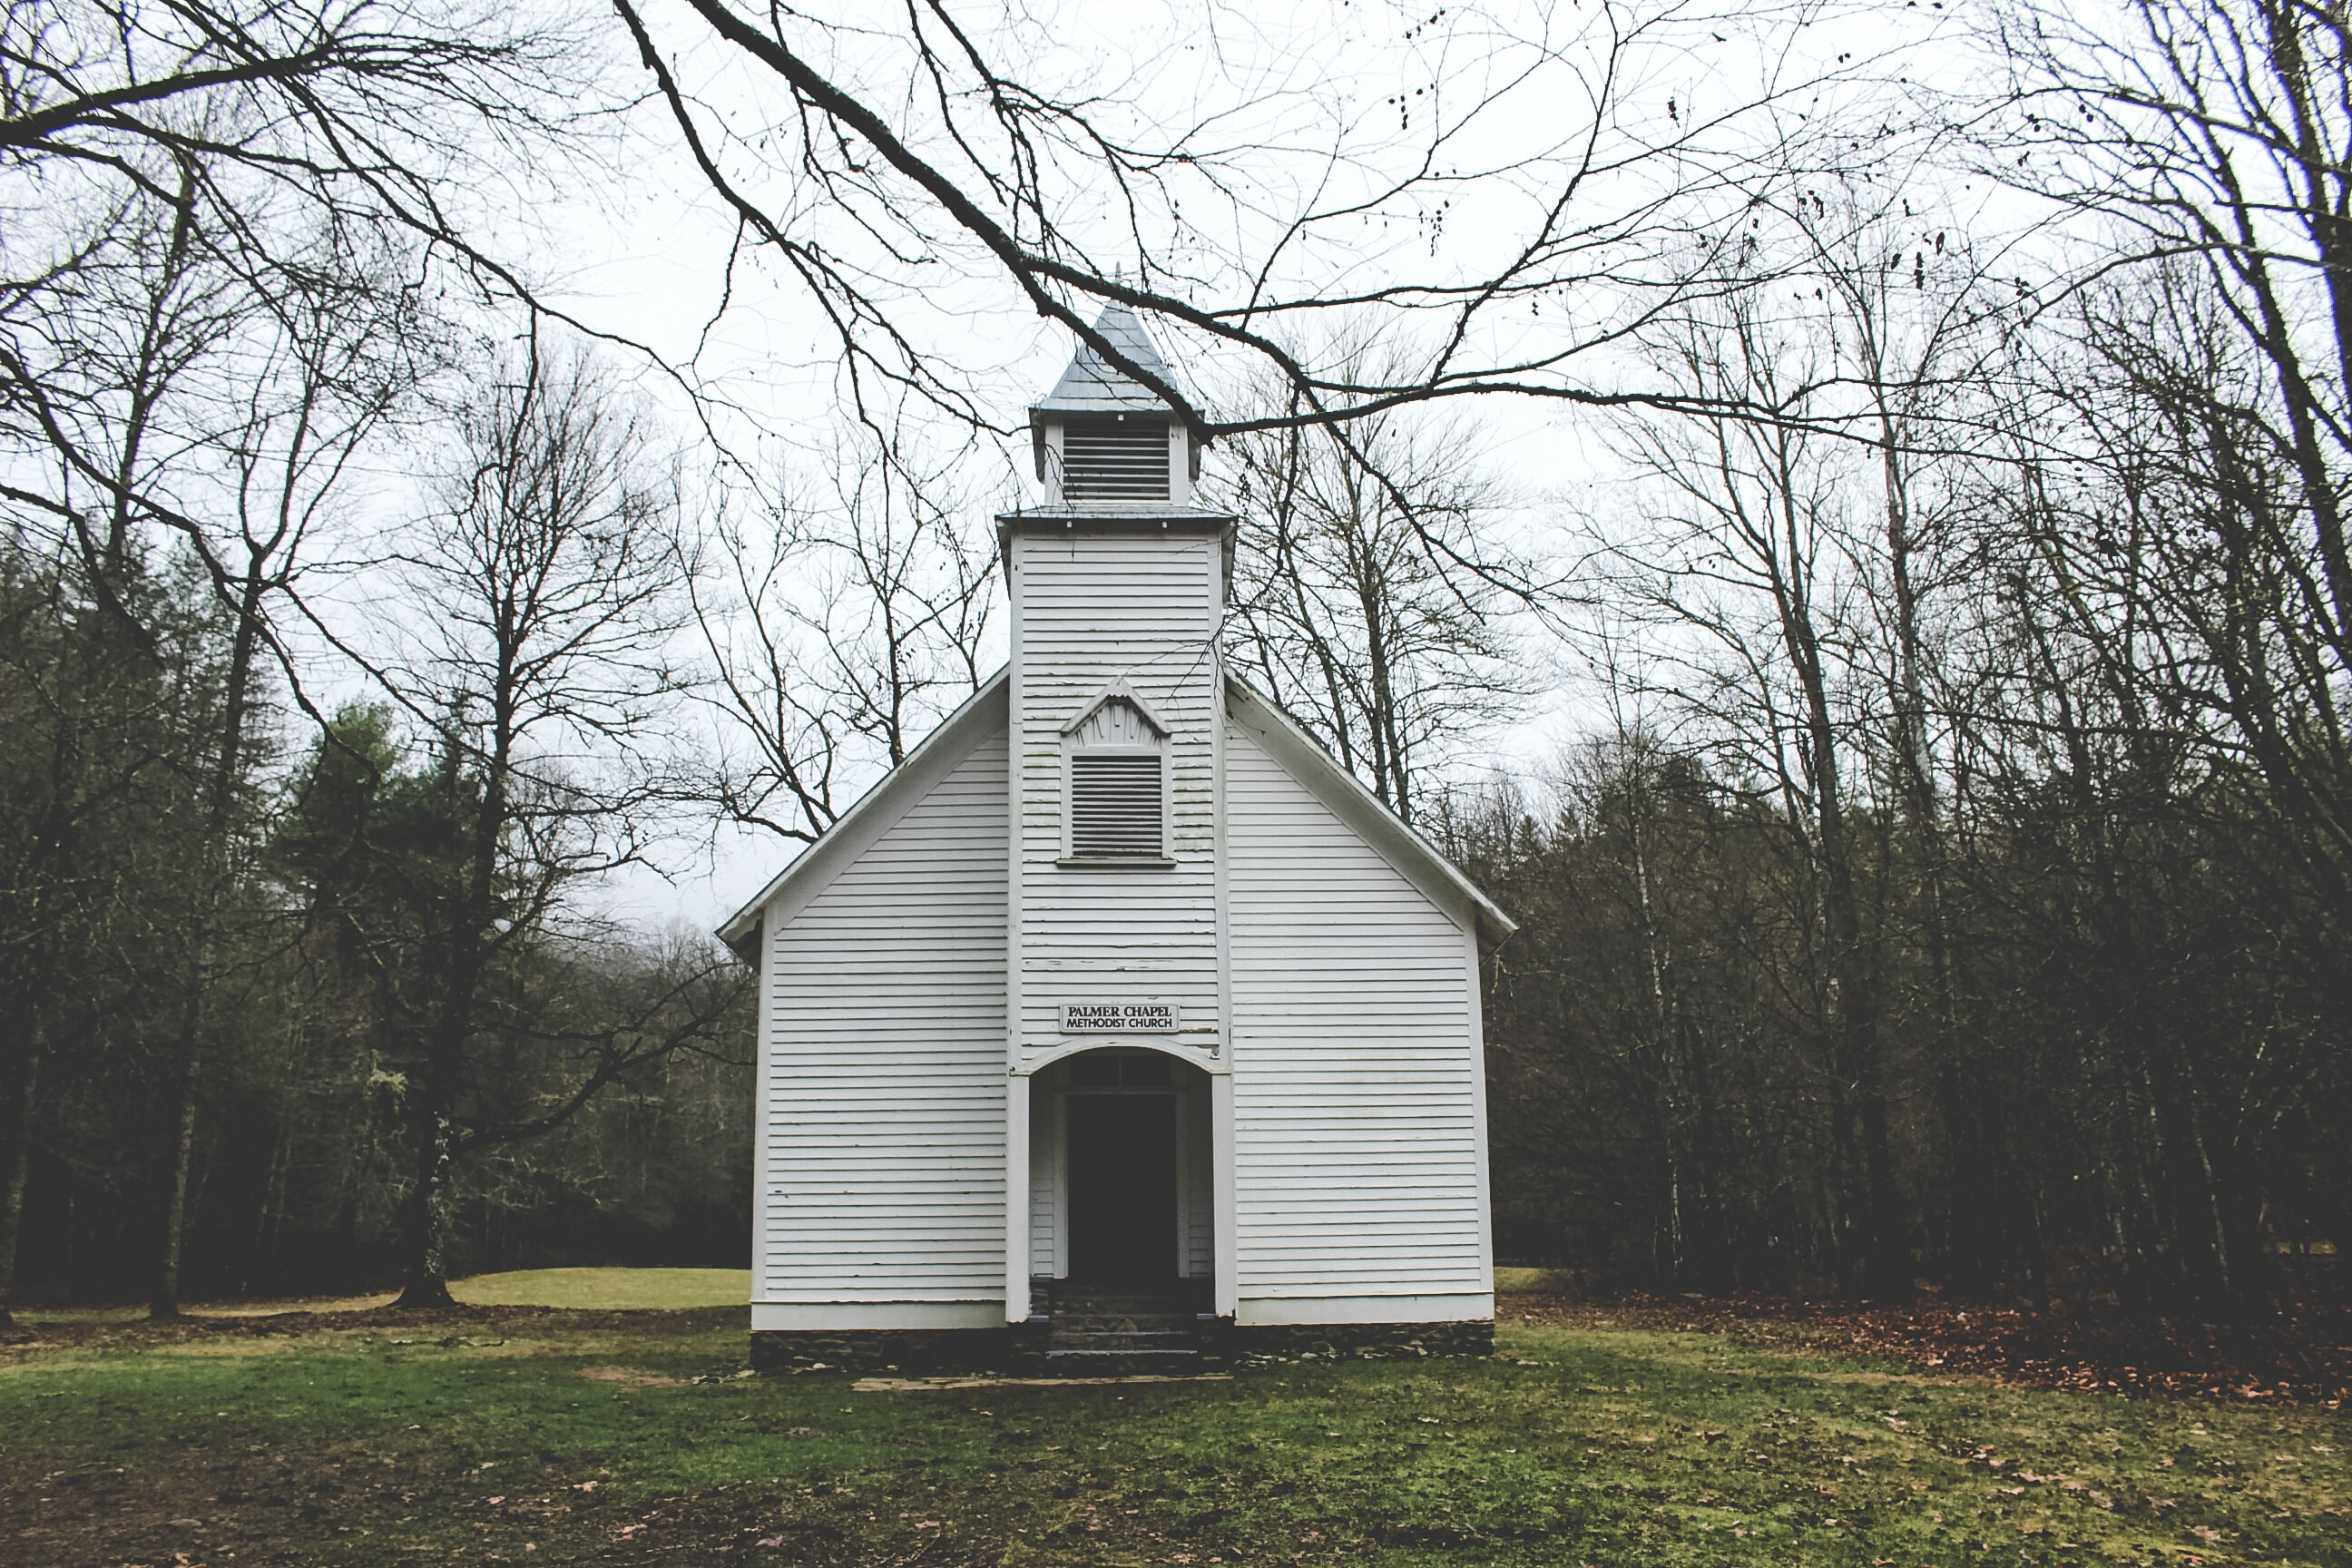 A small wooden chapel near a forest in Cataloochee